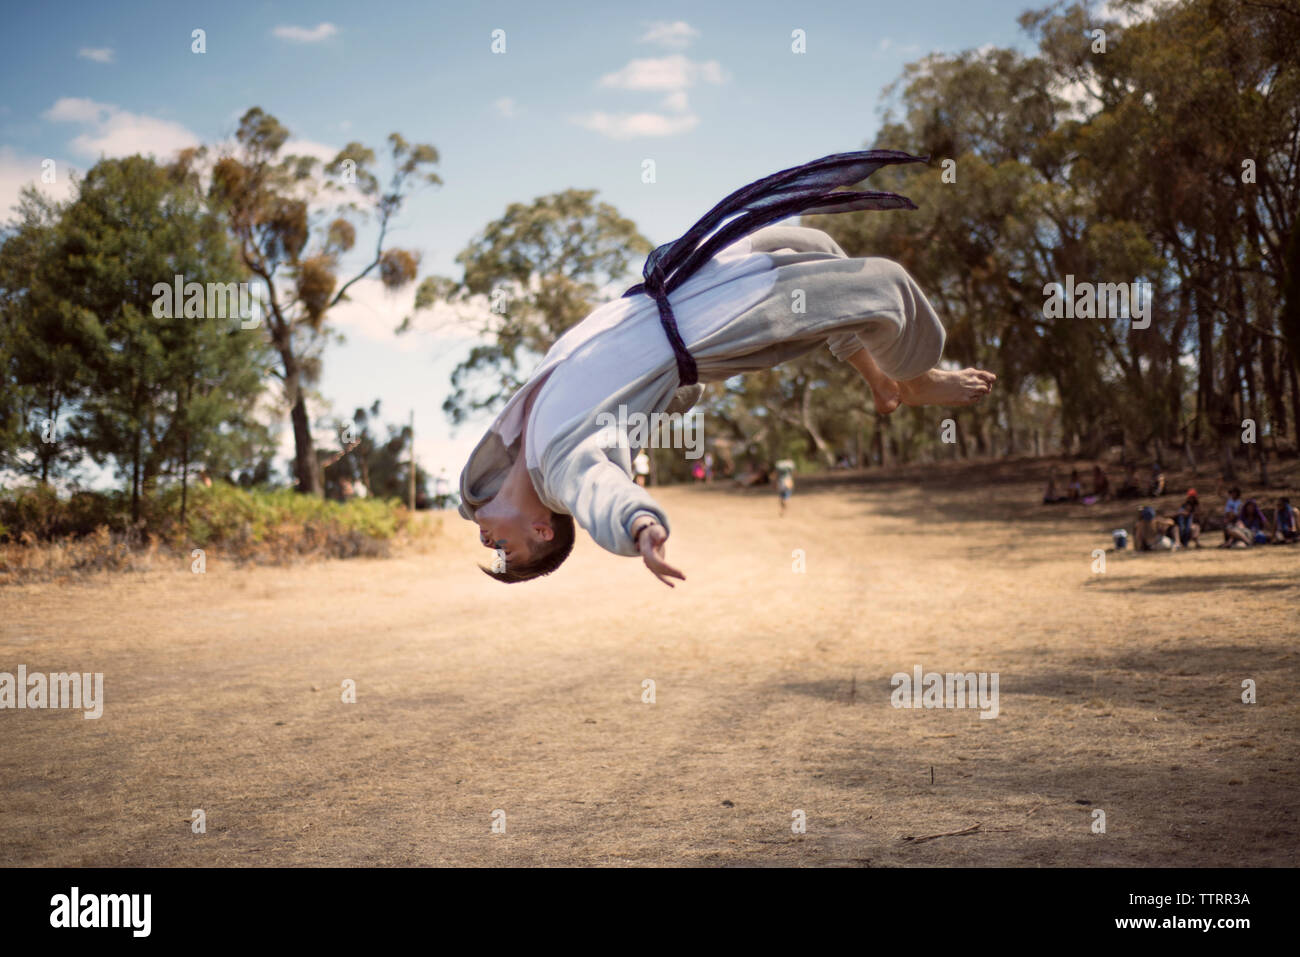 Male martial artist performing back flip on dirt road - Stock Image